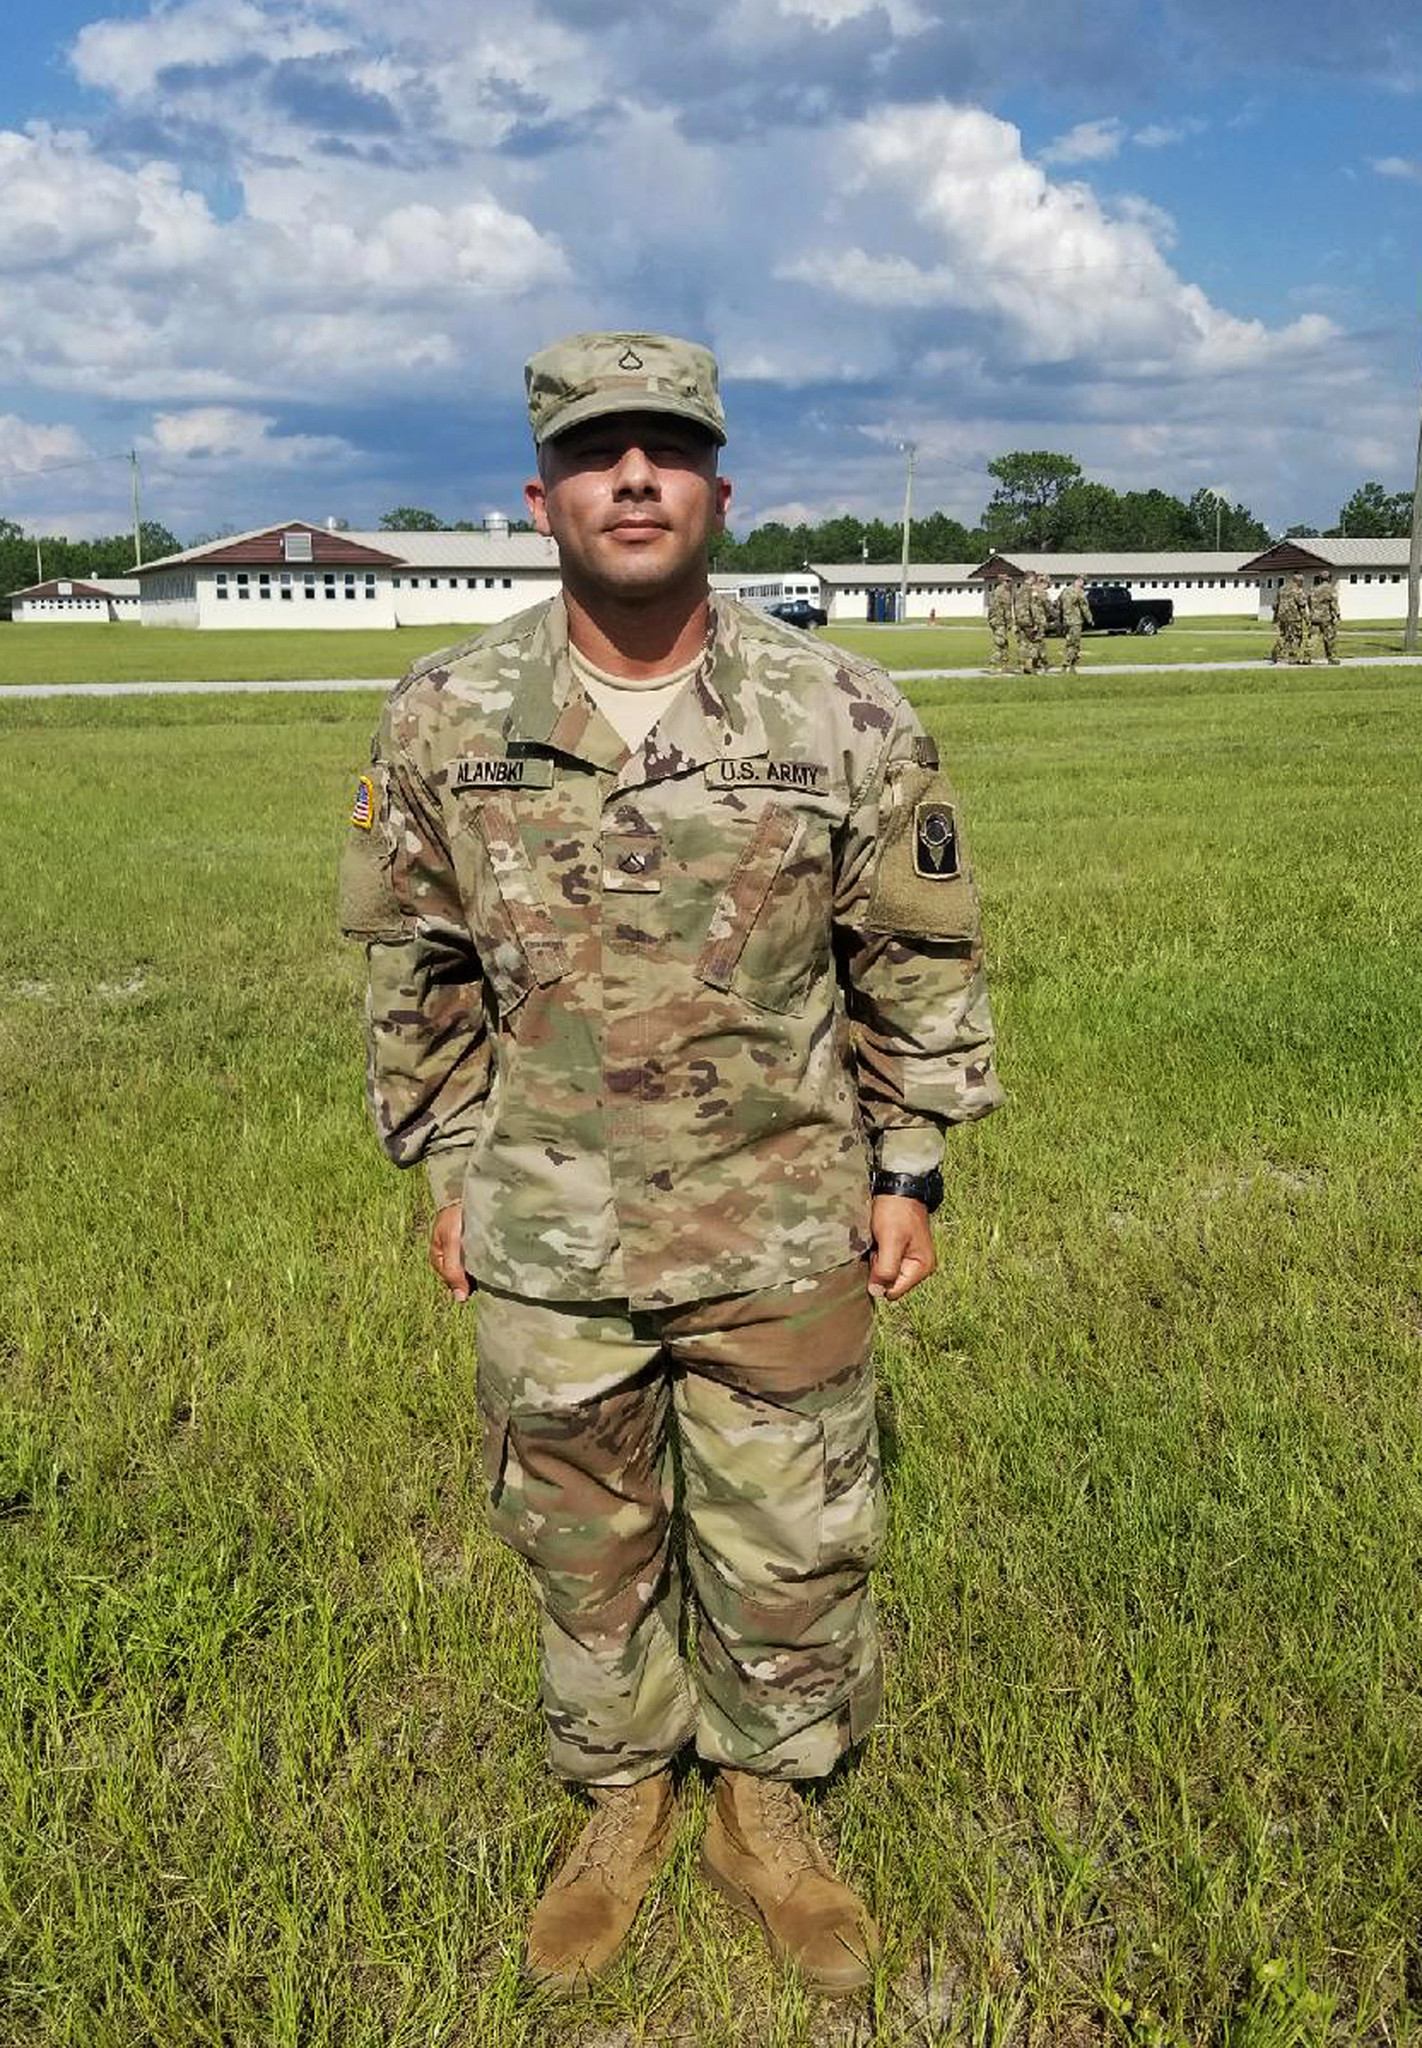 Florida soldier wounded in Iraq says path to citizenship blocked by government